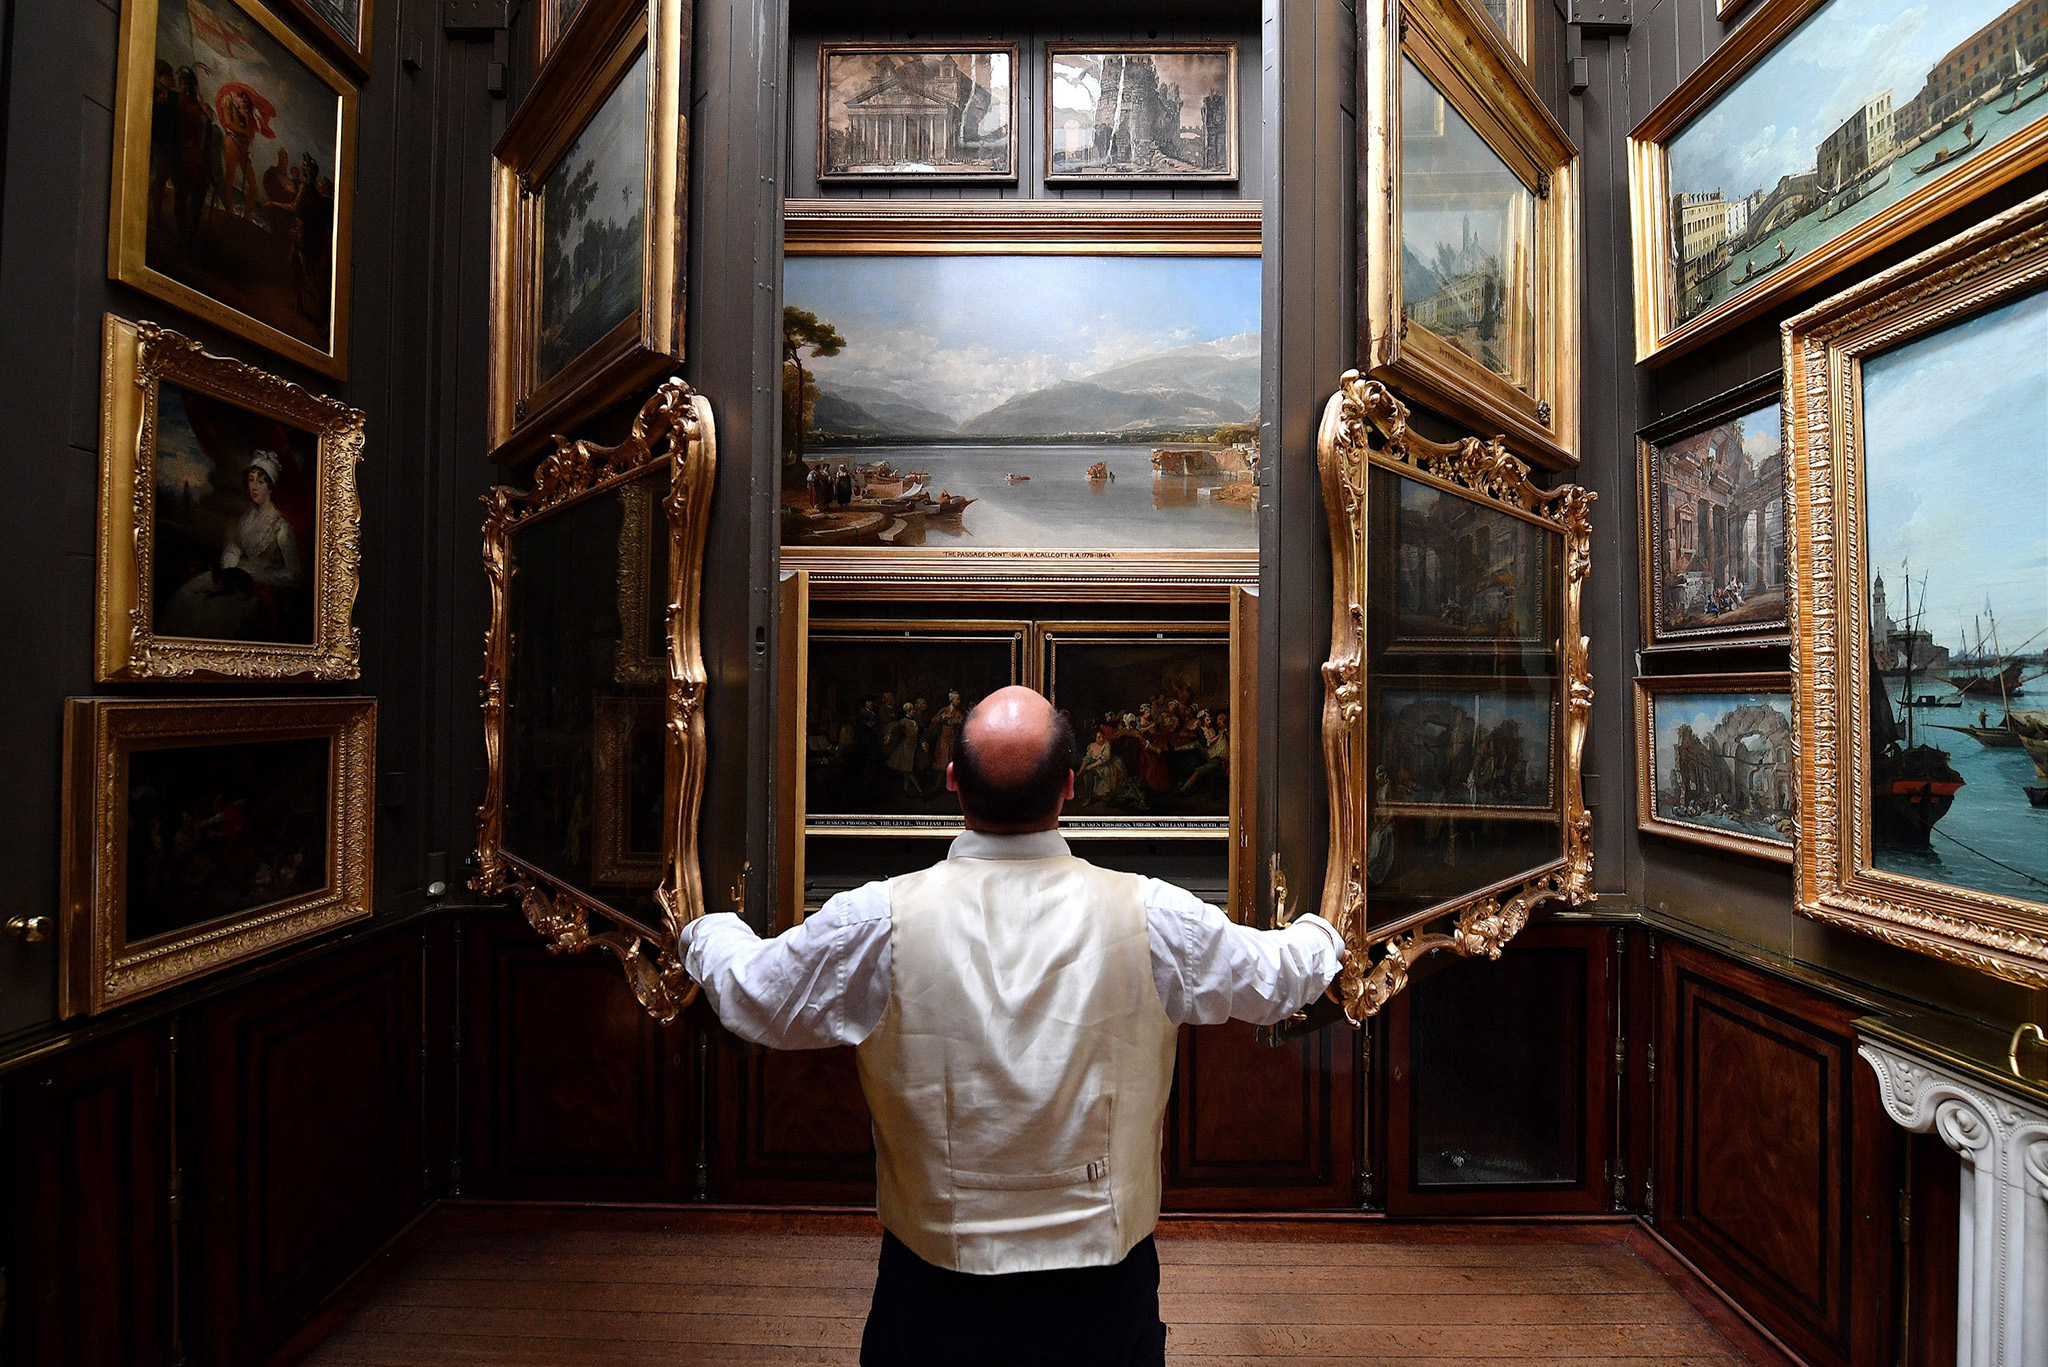 Visitor Assistant Jonty Stern poses in The Picture Room of The Sir John Soanes Museum on September 12, 2016 in London, England. The museum has recently undergone a seven year, £7million restoration with new areas opened to the public for the first time, allowing 10% more of the collection to now be displayed.  (Photo by Leon Neal/Getty Images)***BESTPIX***